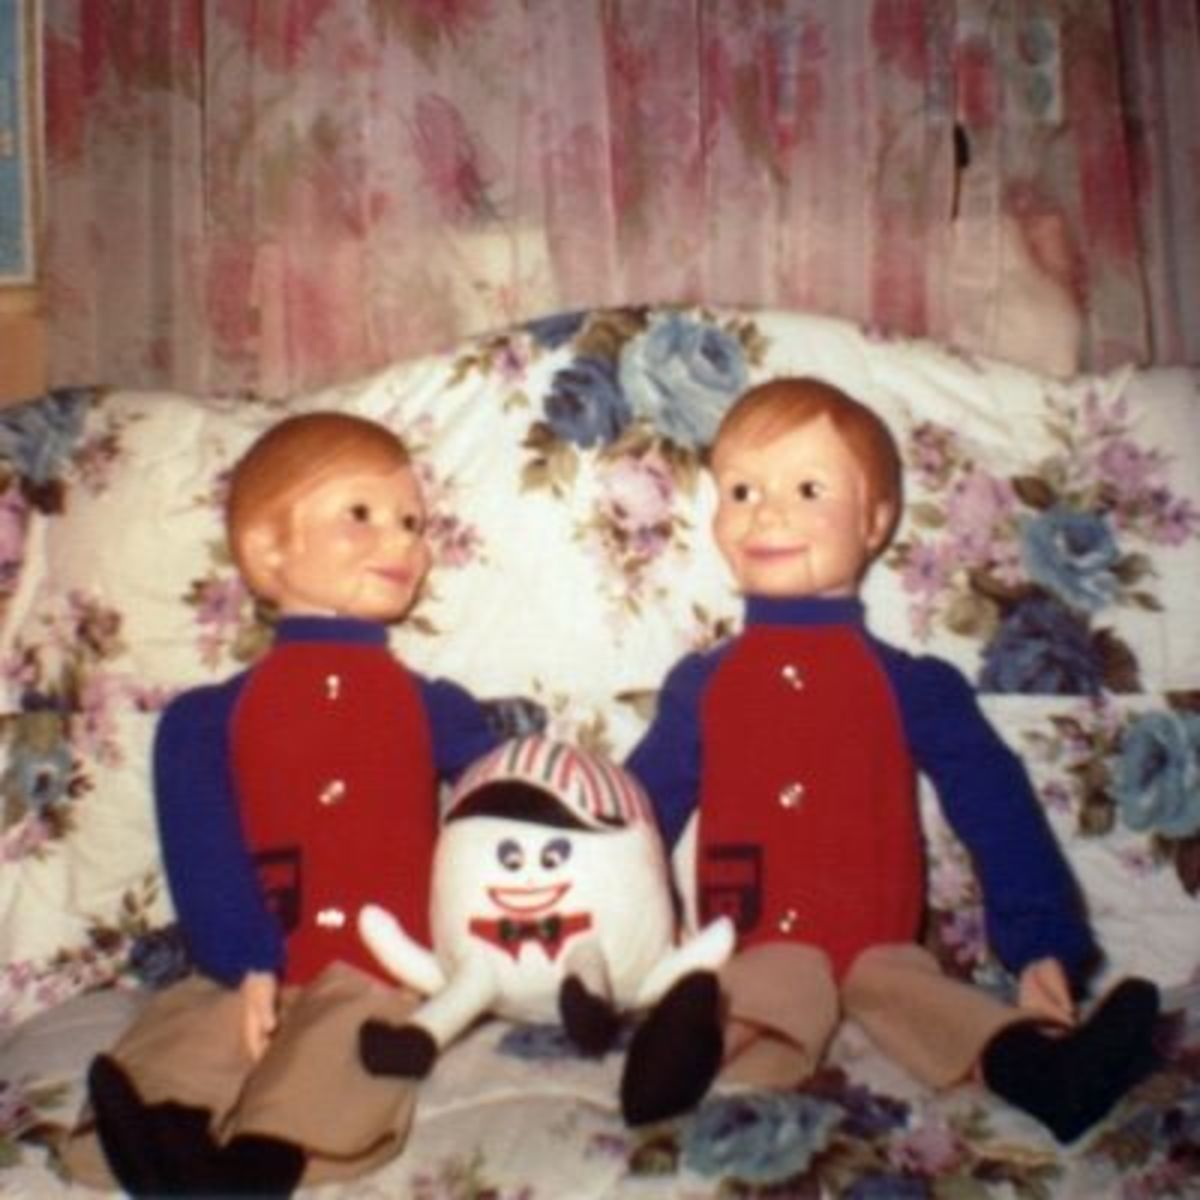 A Duo of Simon Sez's, toy ventriloquist dolls of the 1970s manufactured by the Horseman doll company